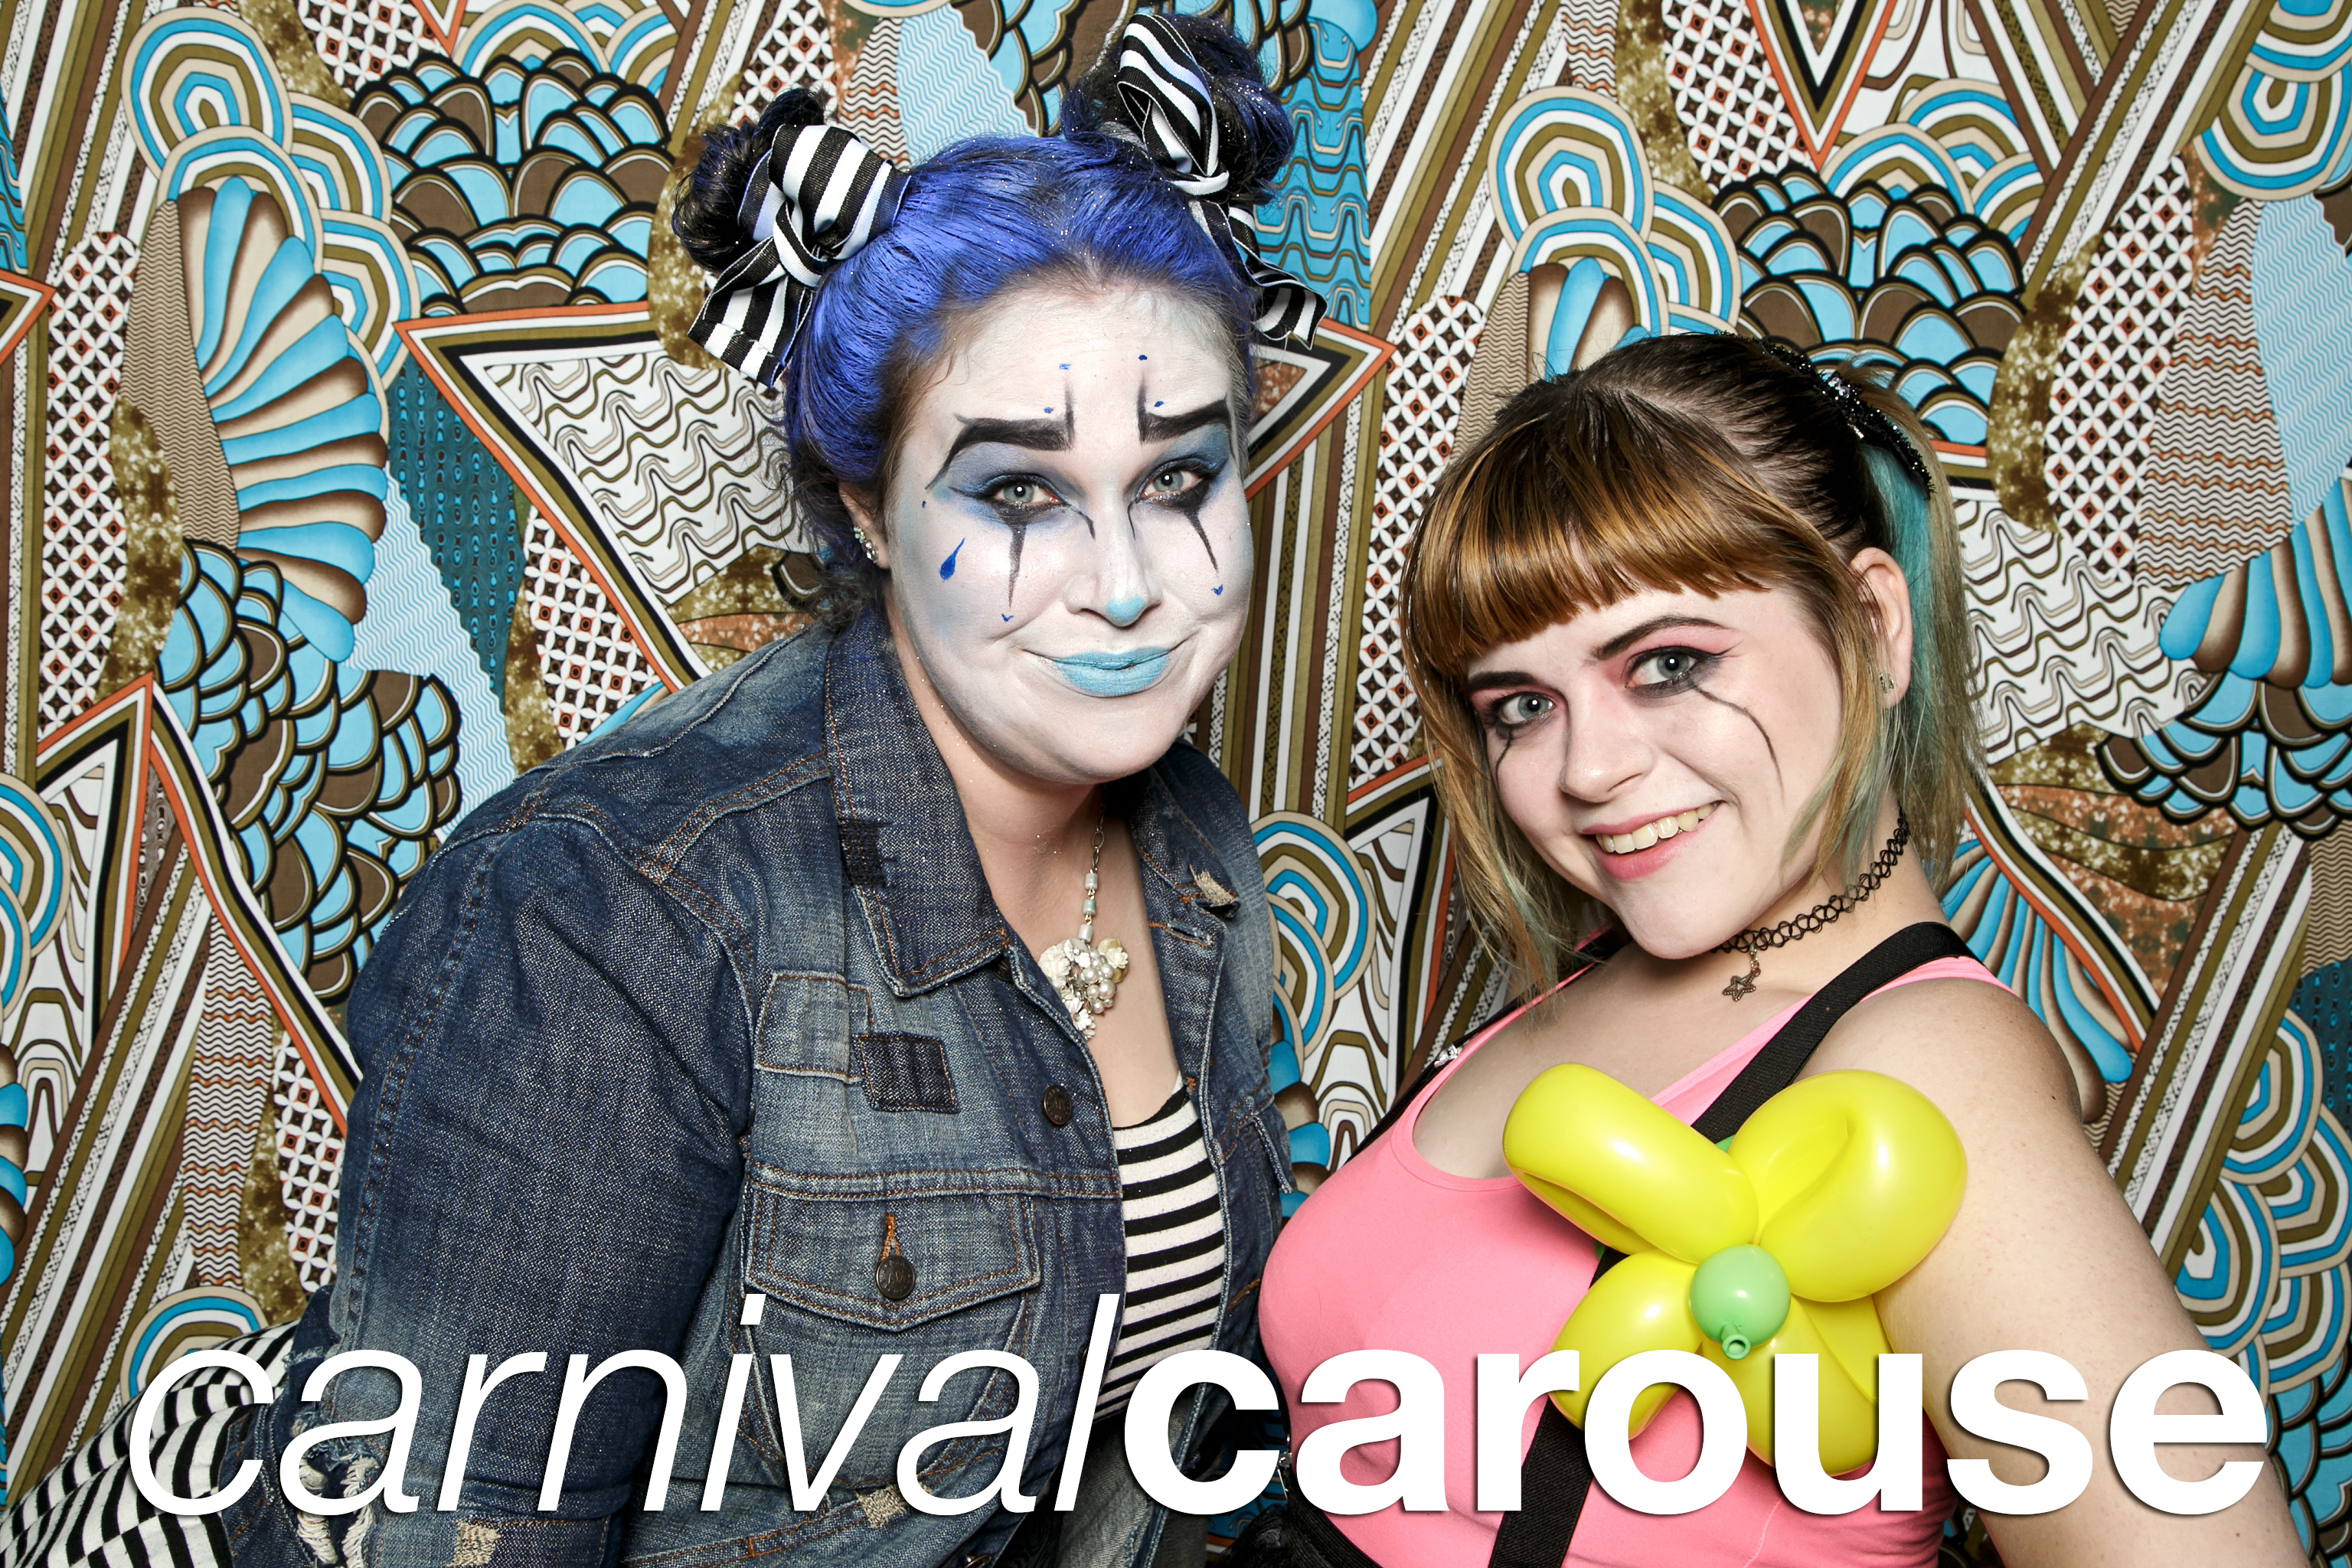 portrait booth photos from carnival carouse at aqua lounge in warner robins, october 2017